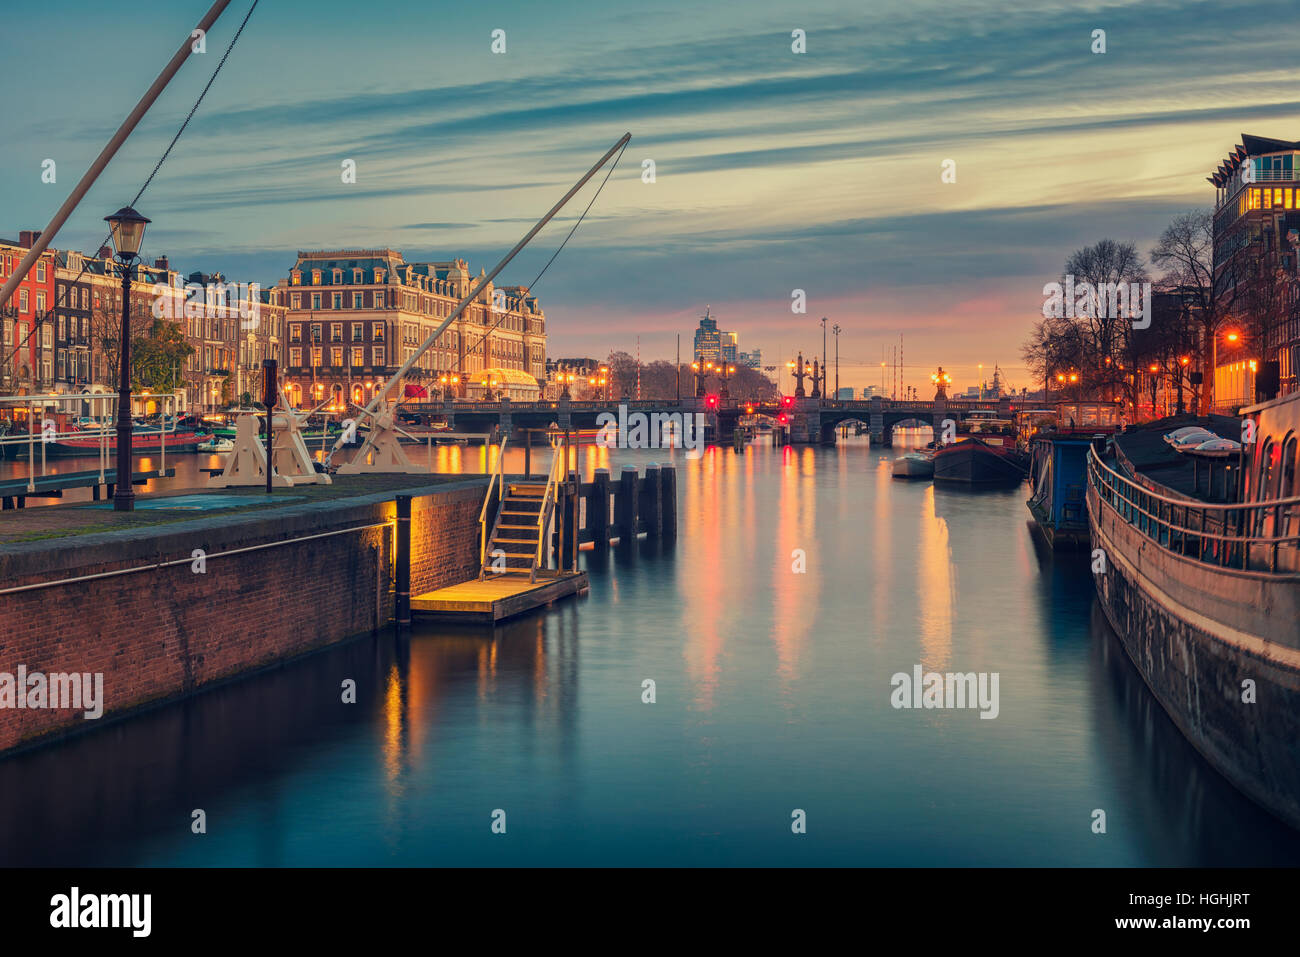 Amstel River and surroundings in Amsterdam Netherlands Stock Photo